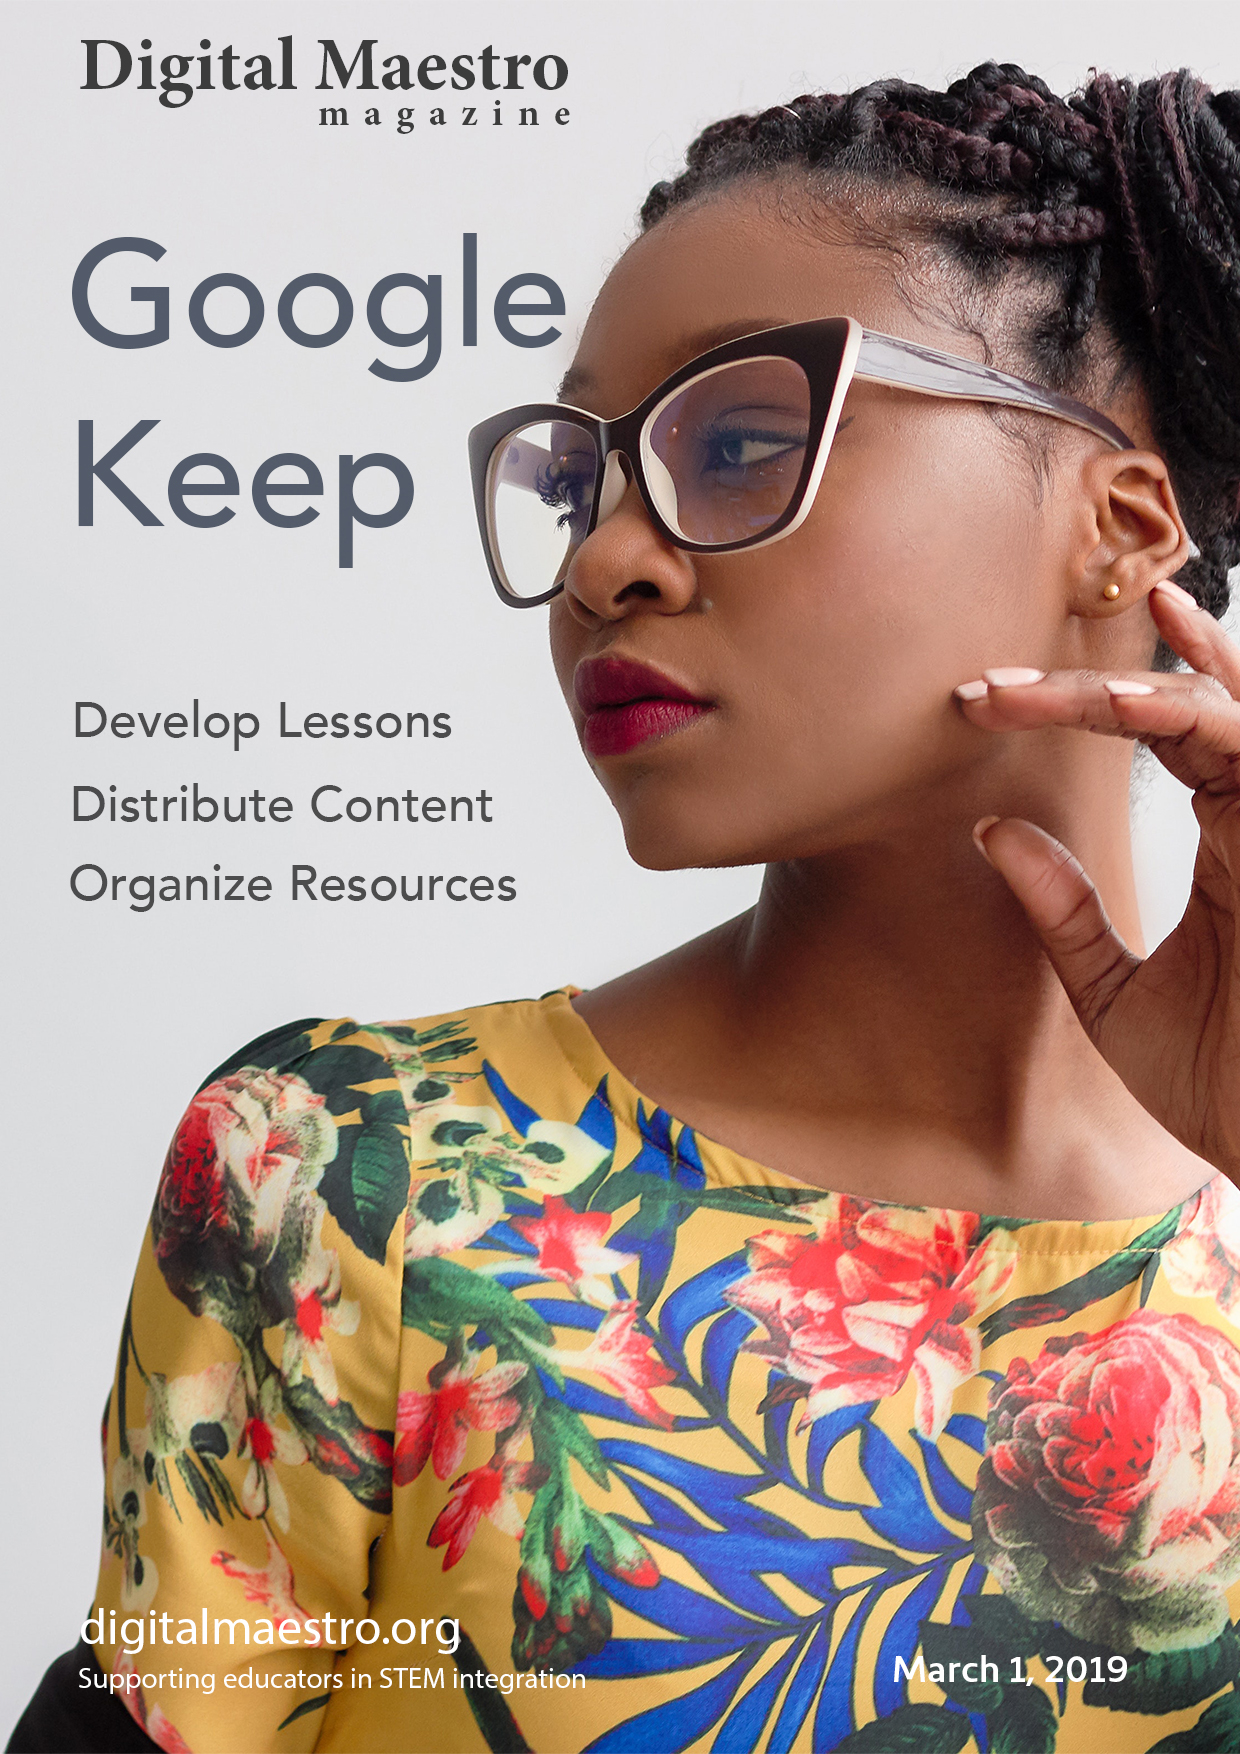 Google Keep - Create and push instructional content. Include images, annotations, and resource links. Develop complete lessons within Google Keep.